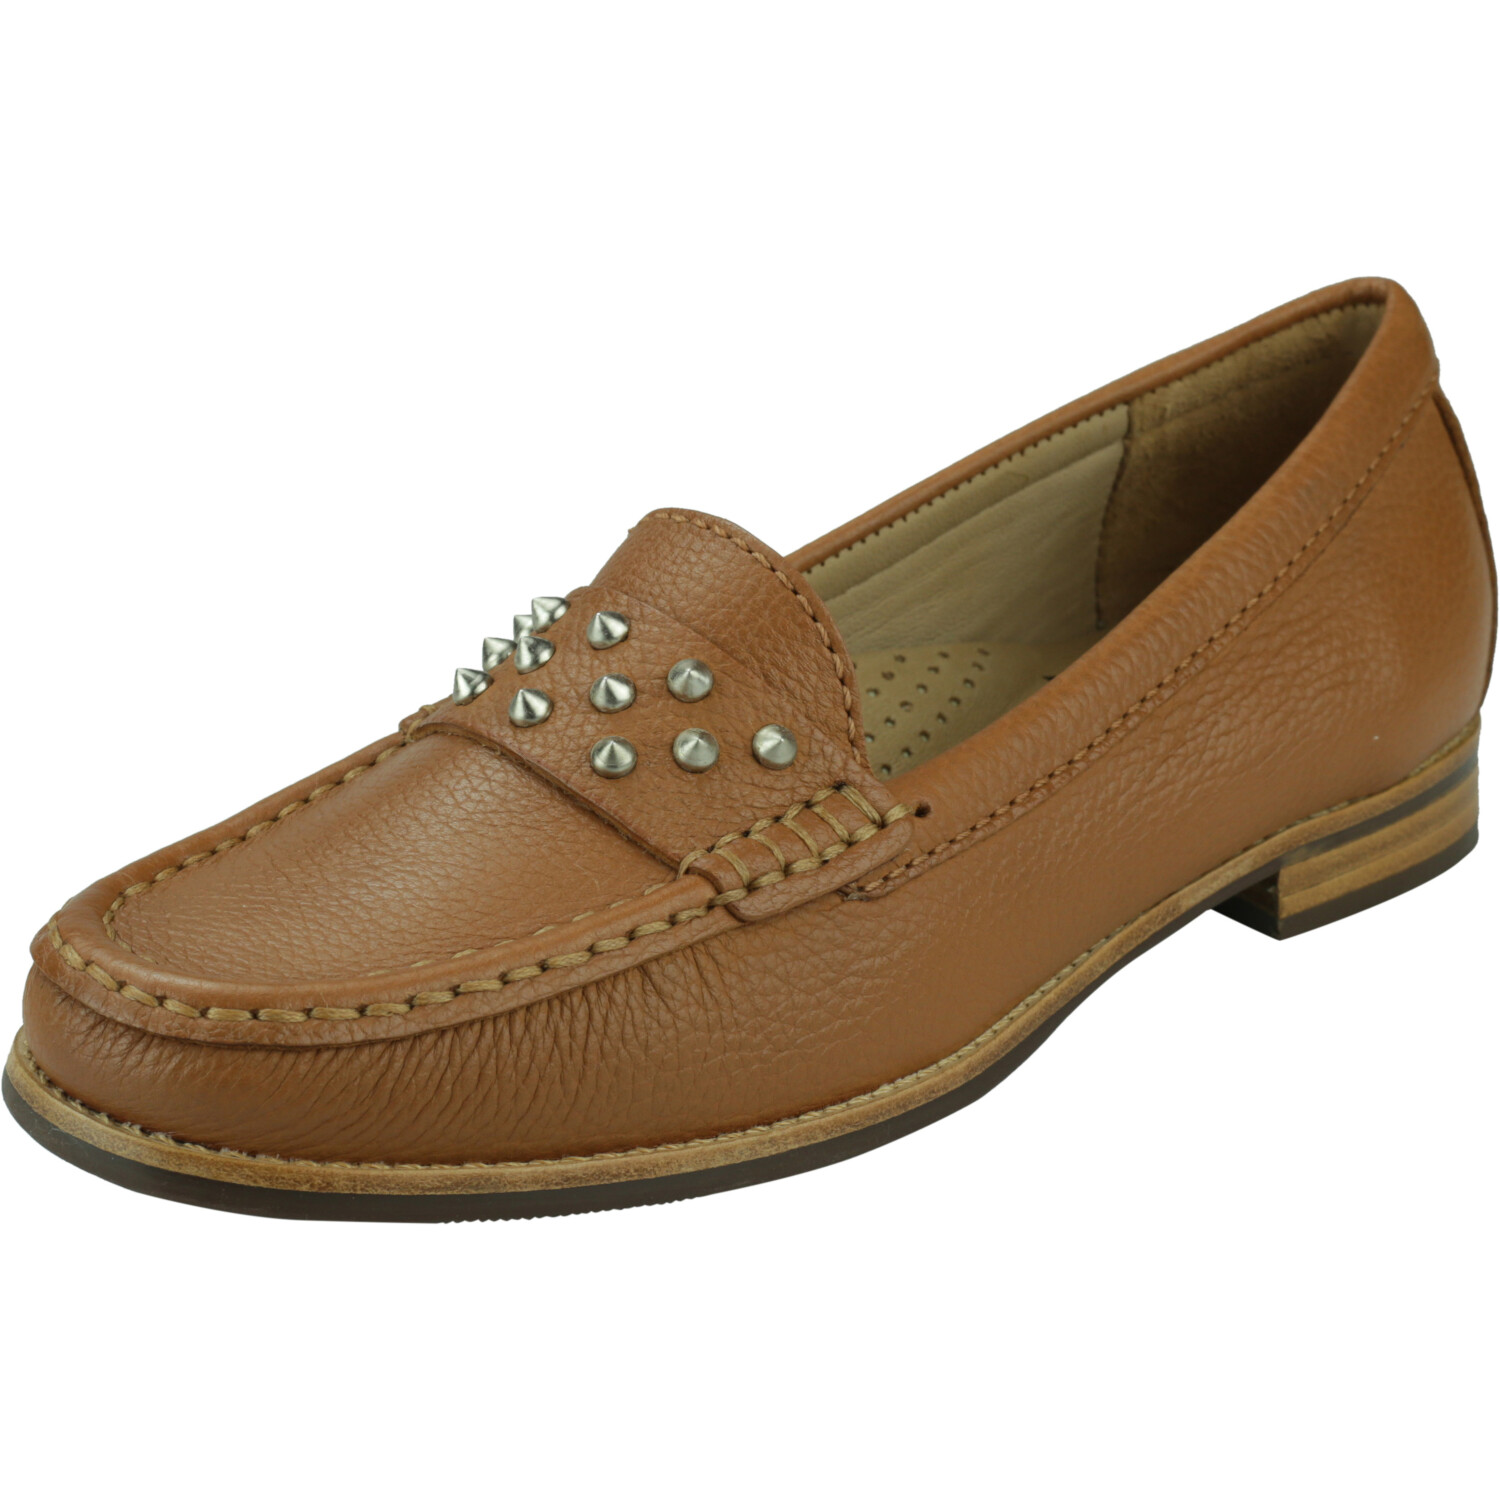 Driver Club Usa Women's Louisville Grainy Tan Ankle-High Leather Flat Shoe - 6.5M